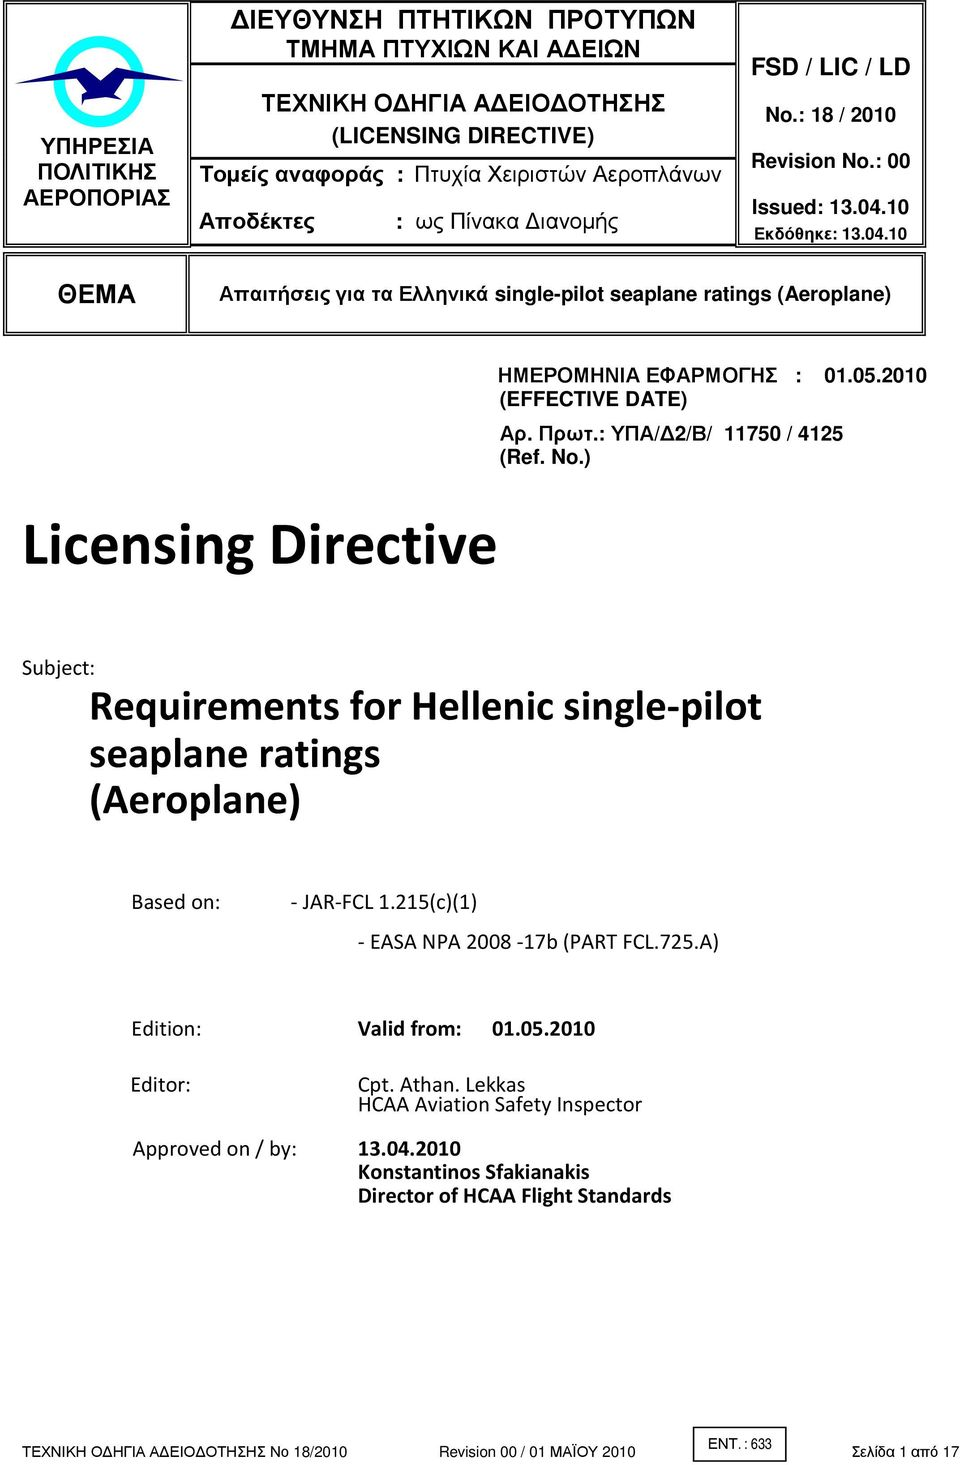 05.2010 (EFFECTIVE DATE) Αρ. Πρωτ.: ΥΠΑ/ 2/Β/ 11750 / 4125 (Ref. No.) Subject: Requirements for Hellenic single-pilot seaplane ratings (Aeroplane) Based on: - JAR-FCL 1.